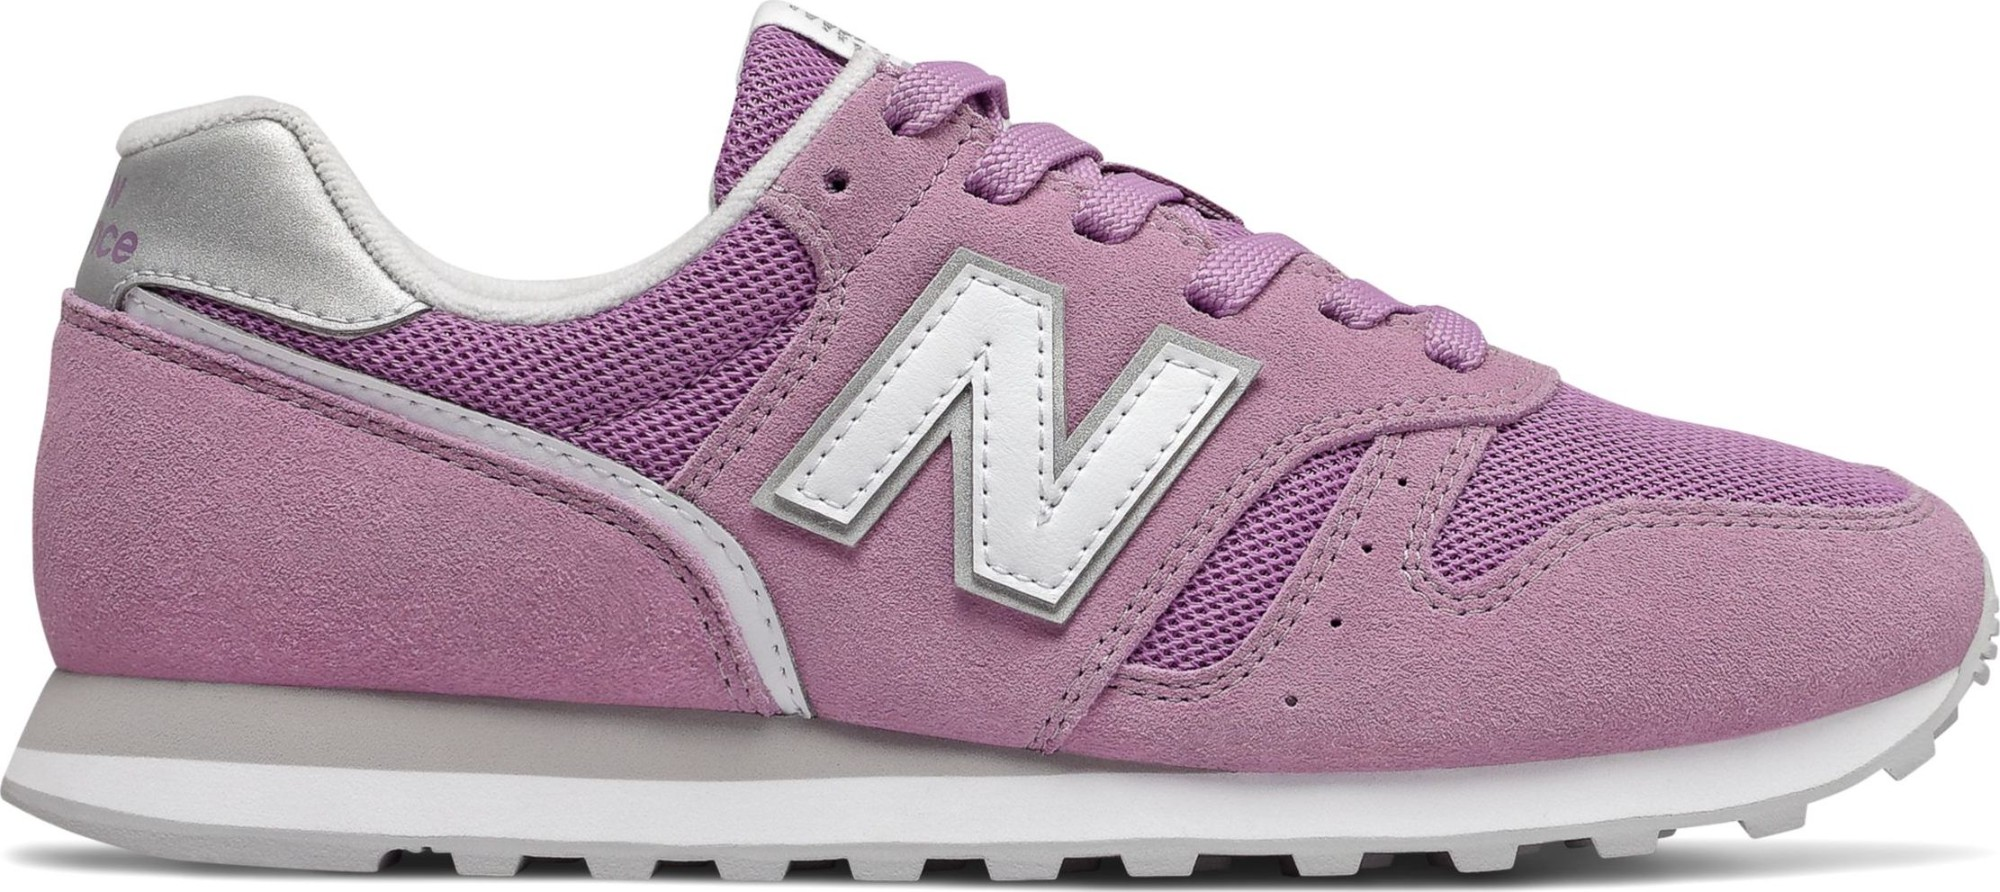 New Balance WL373 Canyon Violet 36